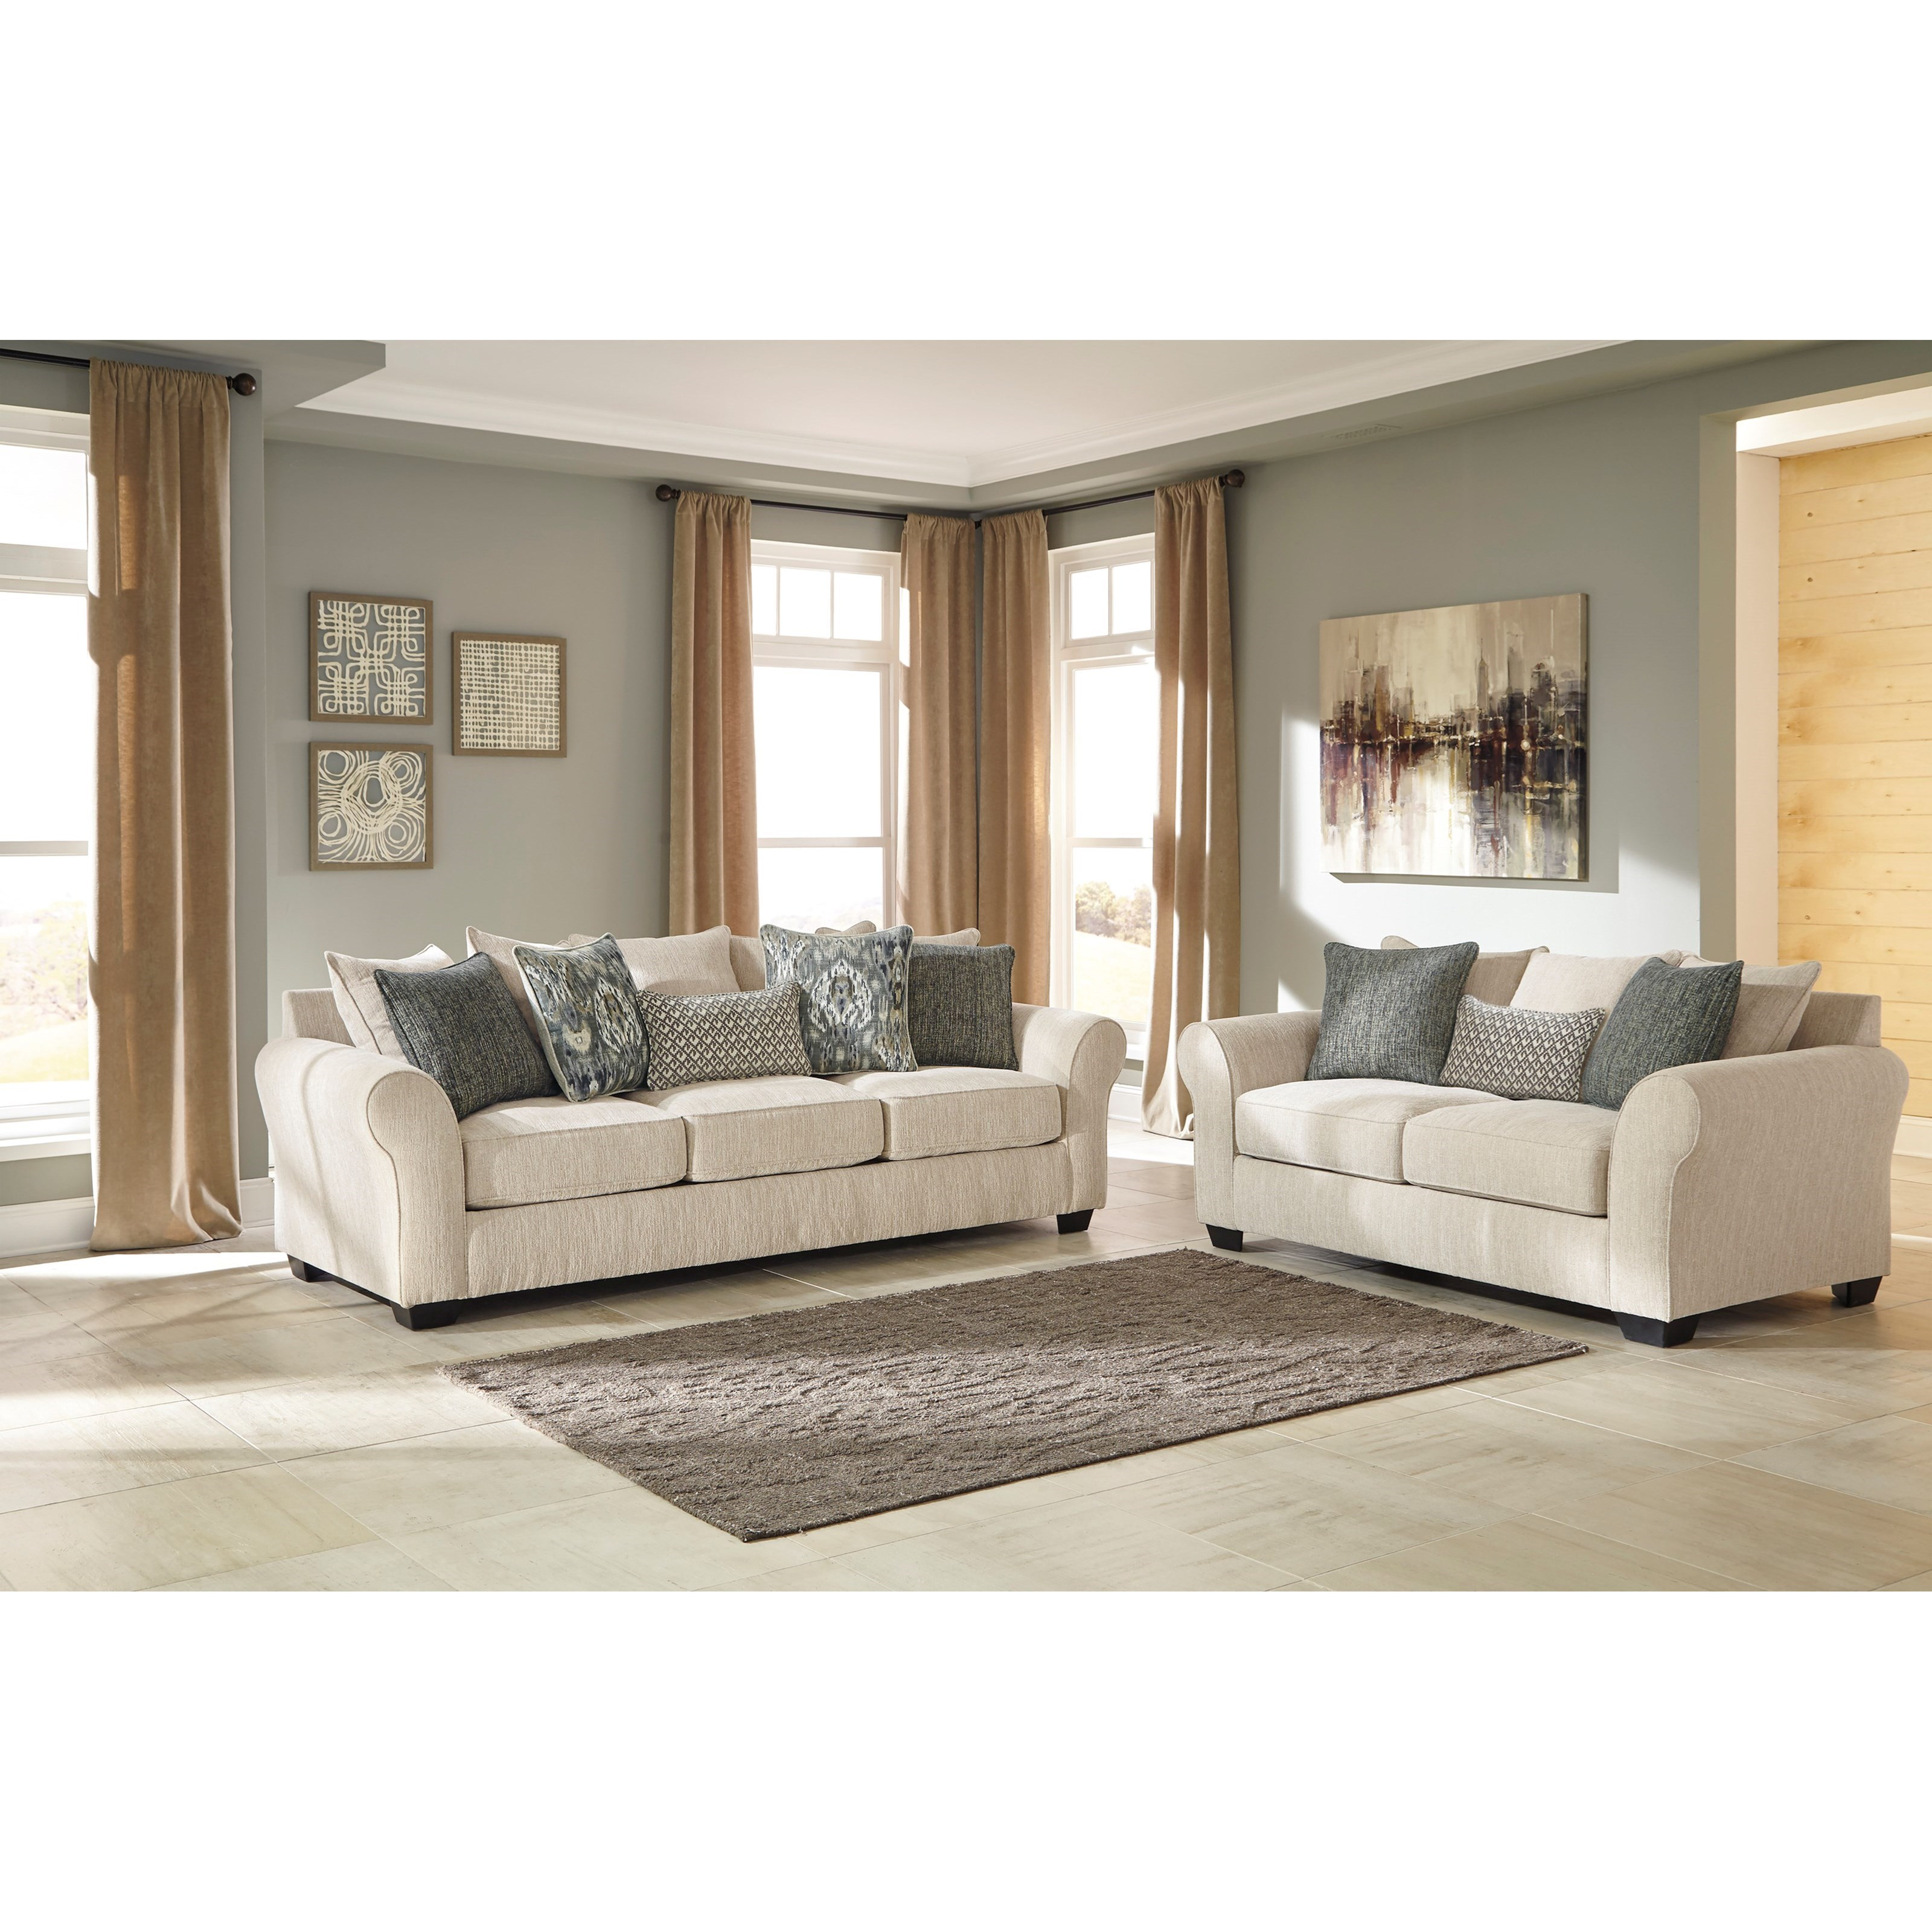 Benchcraft Silsbee Stationary Living Room Group - Item Number: 55402 Living Room Group 1